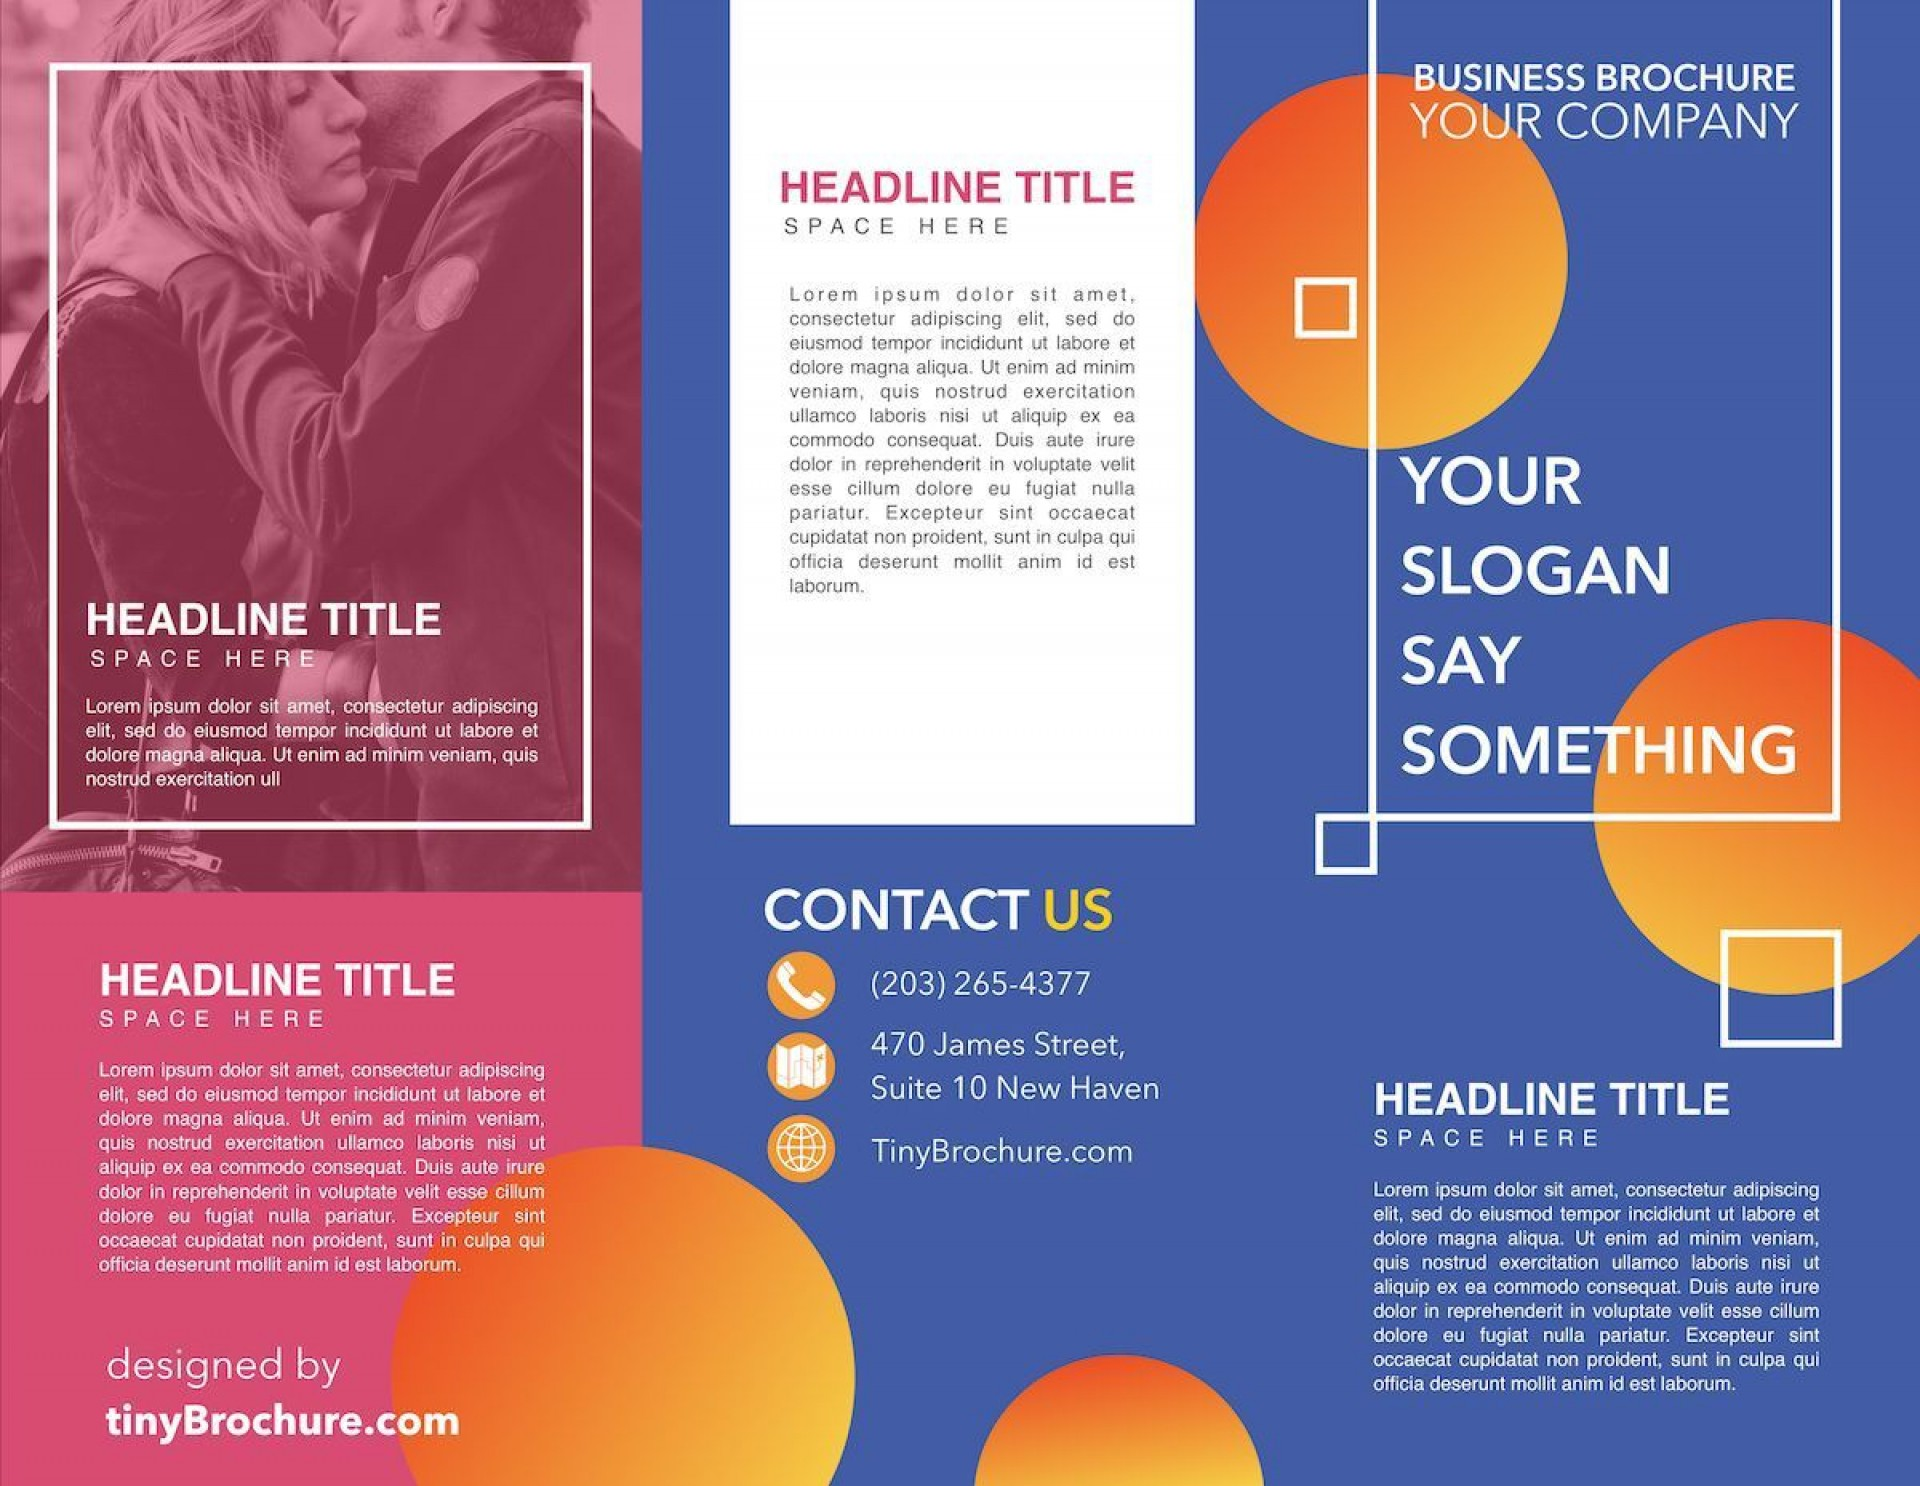 006 Imposing Brochure Template For Google Doc Picture  Docs Free 3 Panel Tri Fold1920